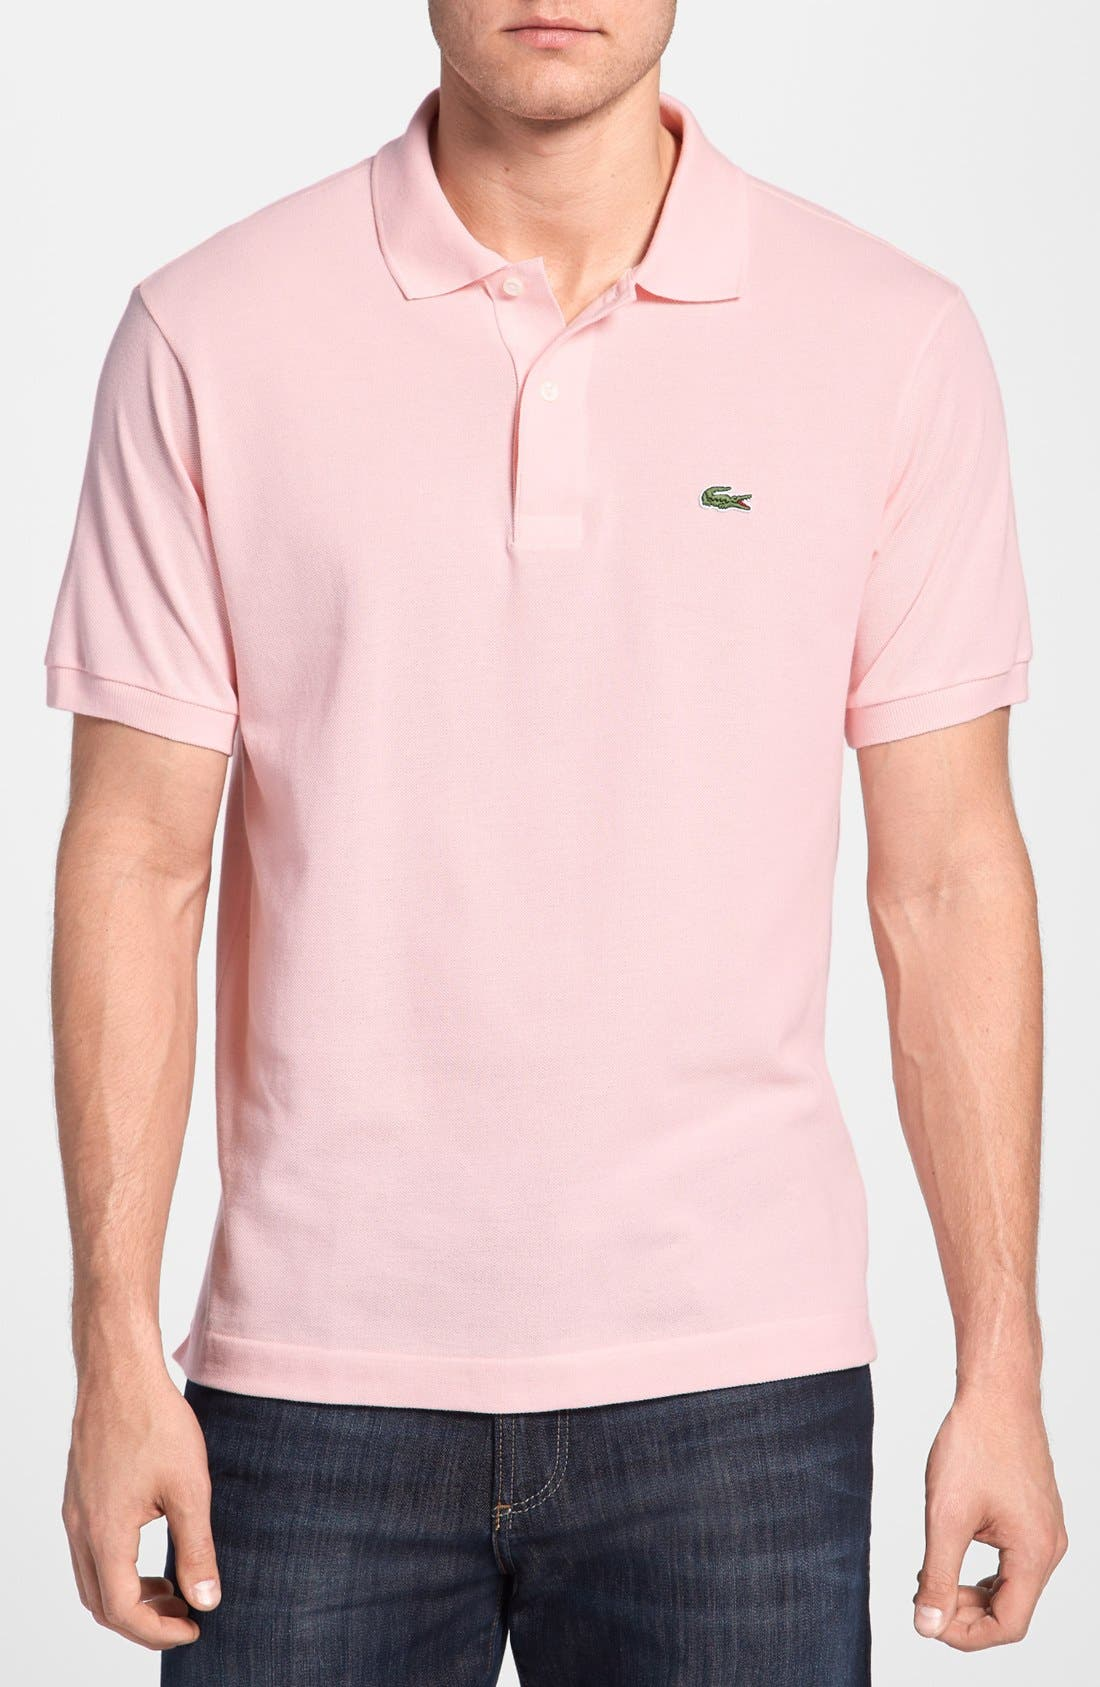 LACOSTE Short Sleeve Pique Polo Shirt - Classic Fit in Pink